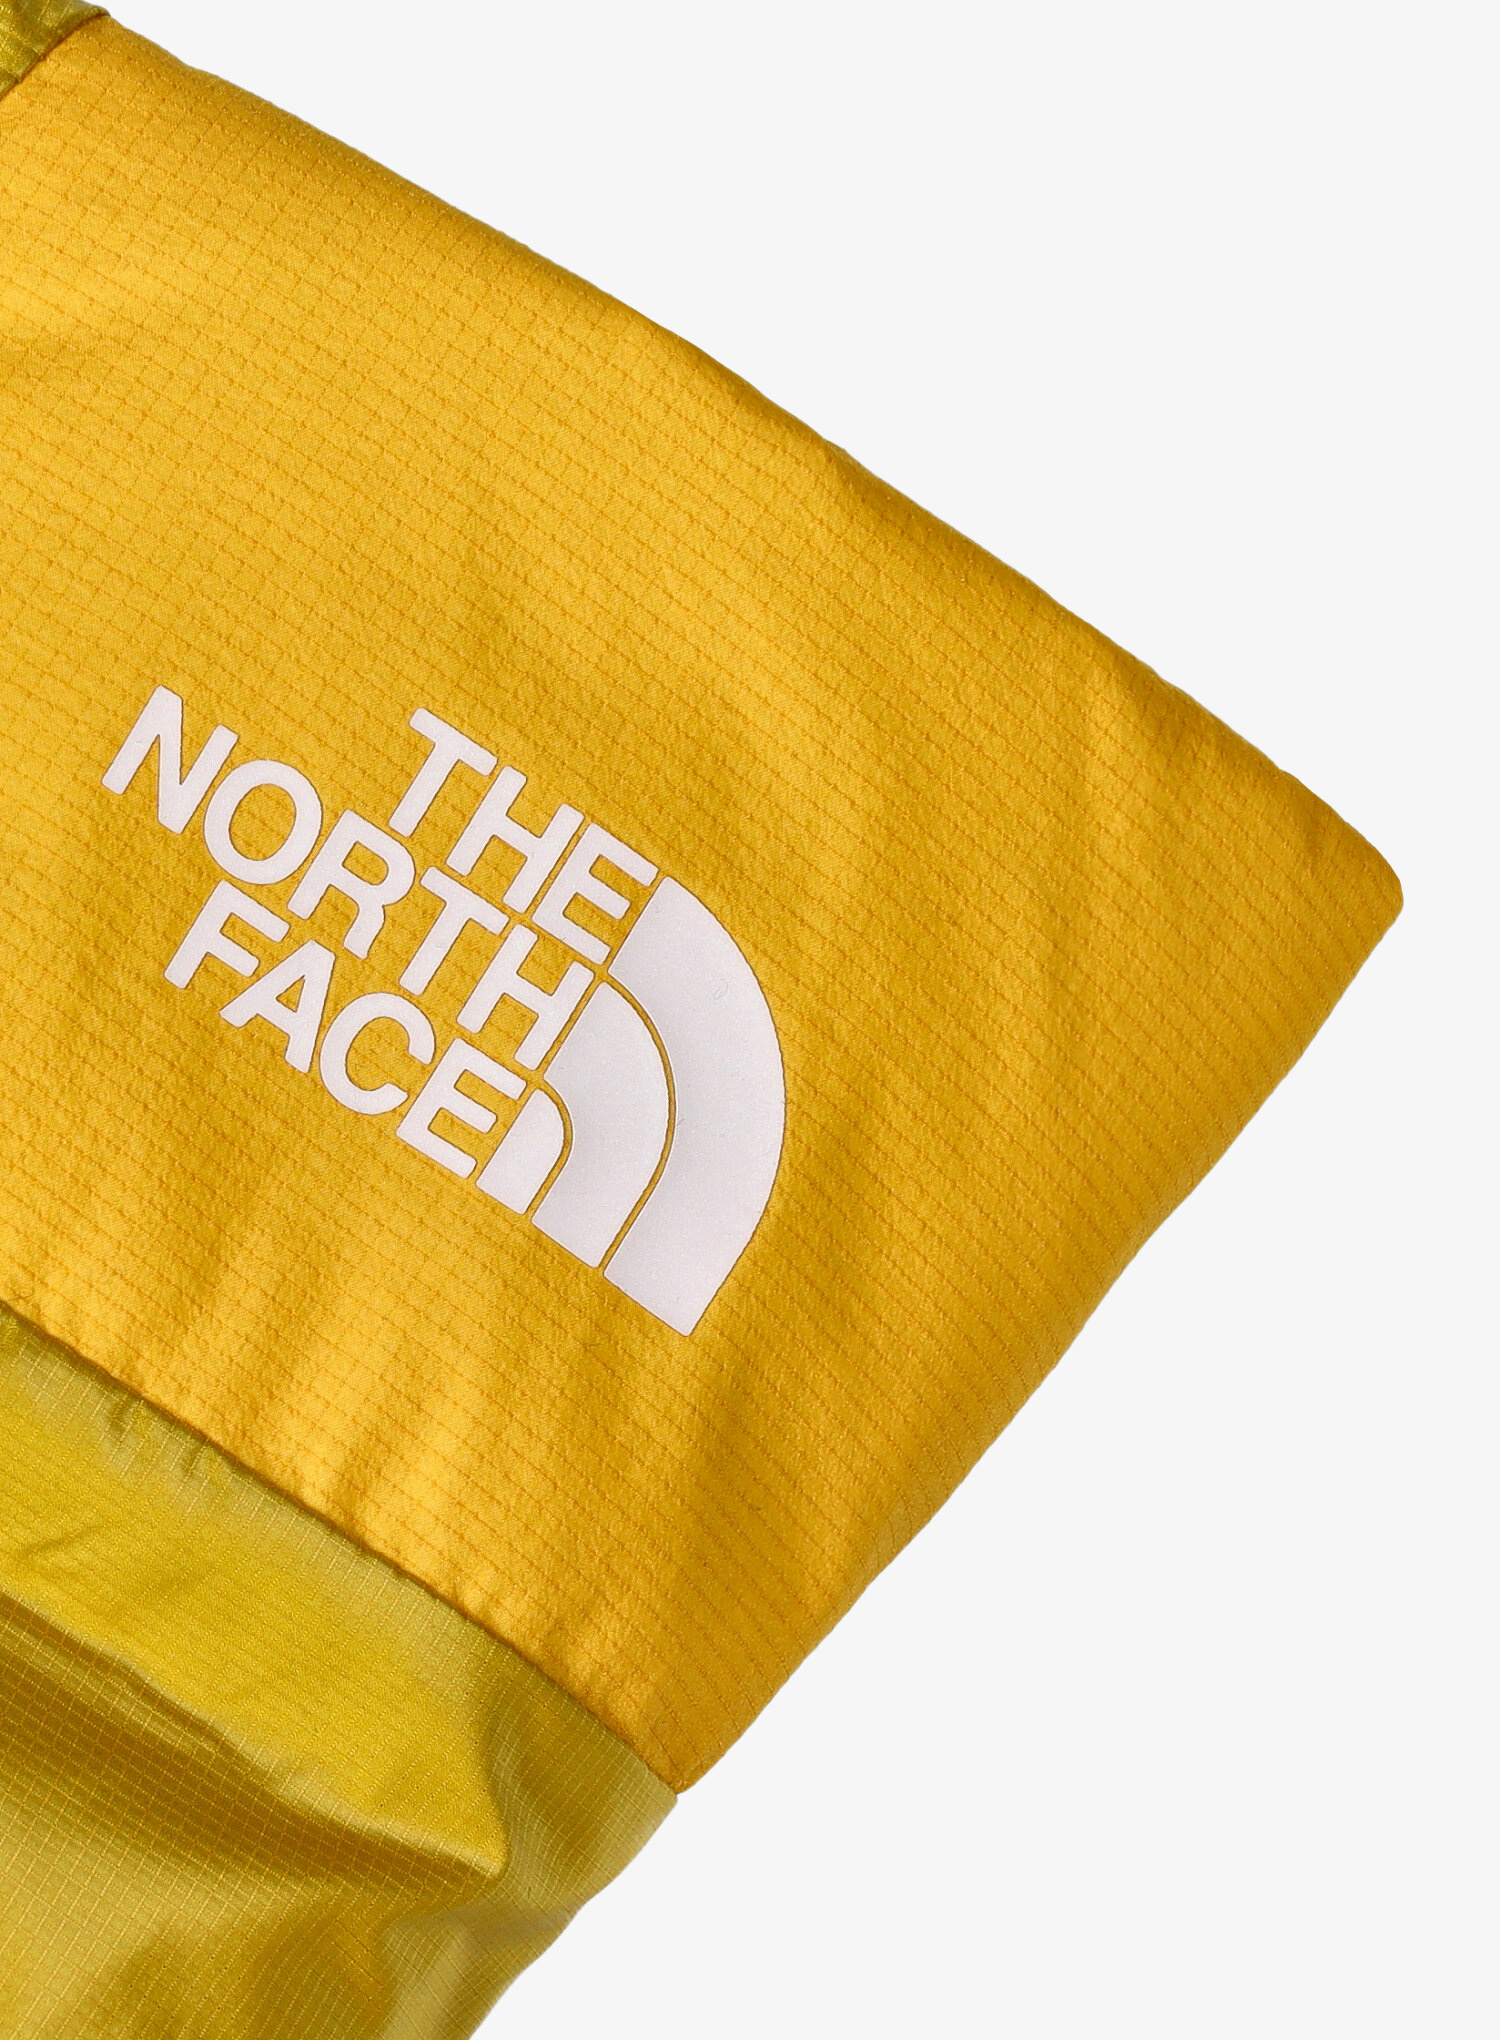 Łapawice The North Face AMK L4 Insulated Down Mitt - canarry/gold - zdjęcie nr. 5